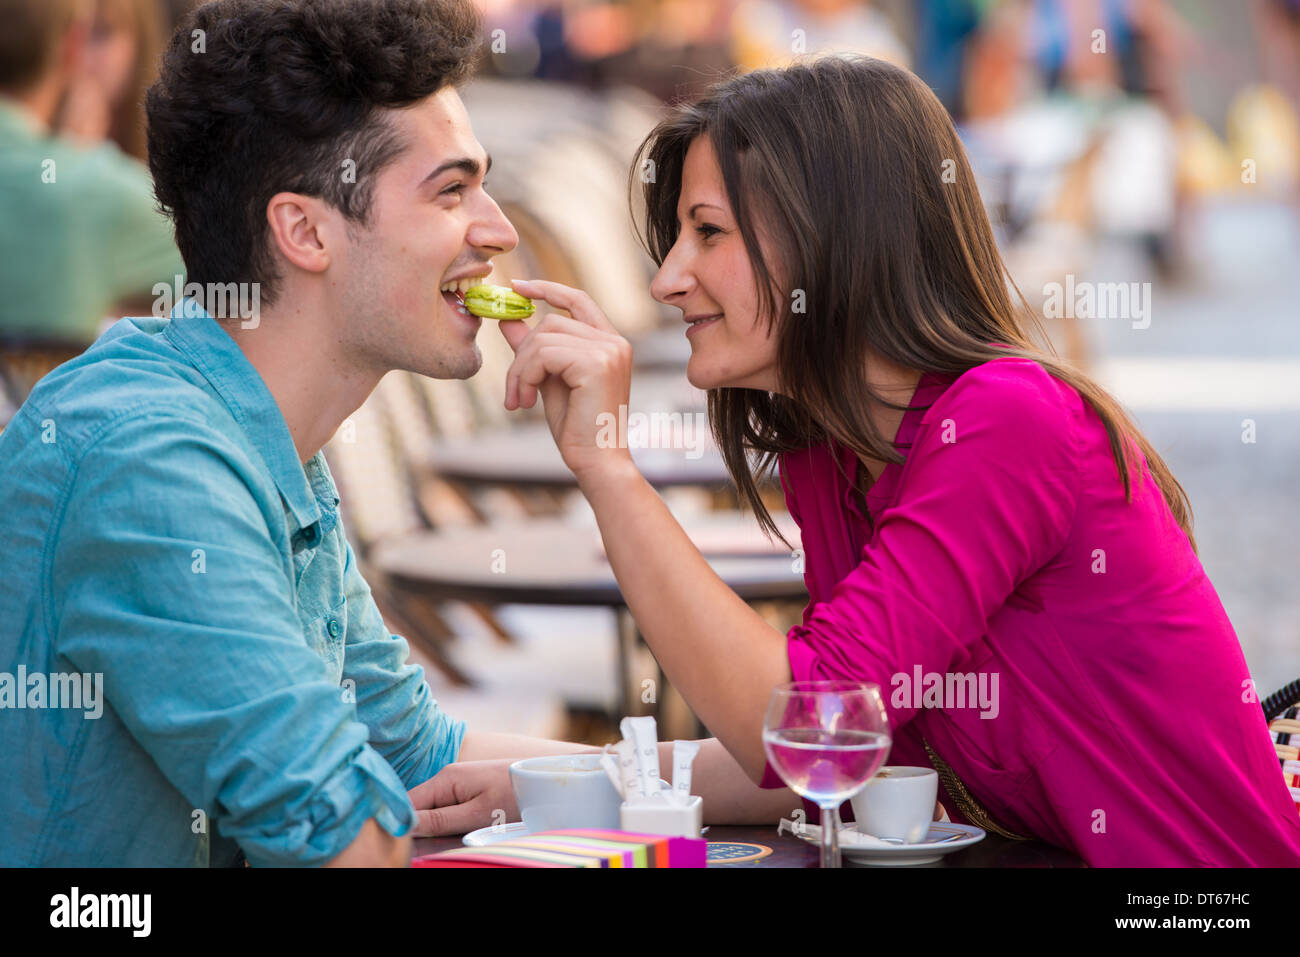 Young couple eating macaroon at pavement cafe, Paris, France - Stock Image